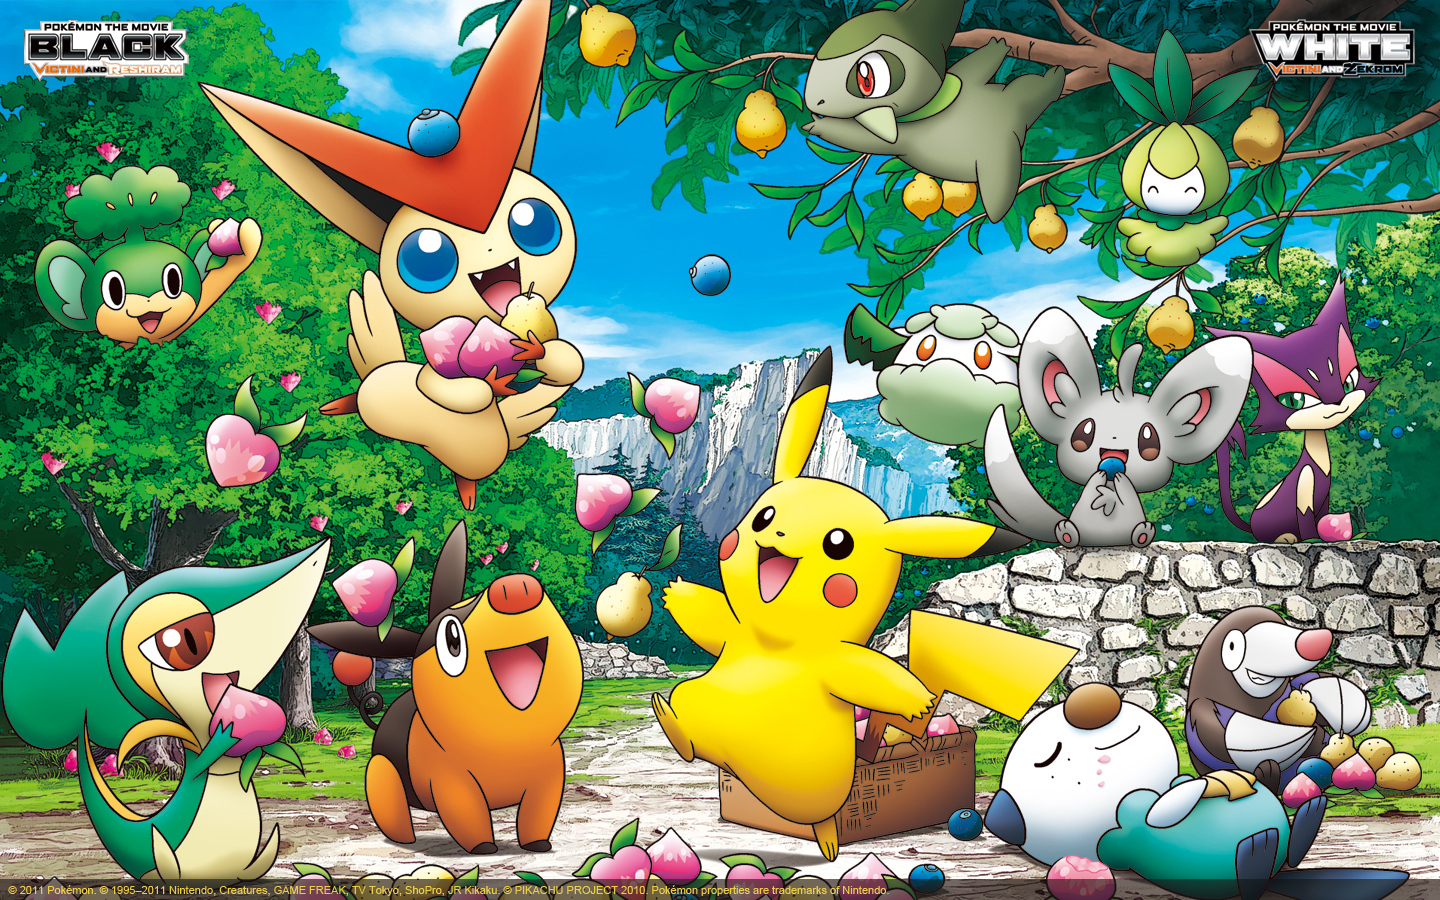 Free download Zekrom Victini Collage Berries [1440x900] for your Desktop,  Mobile & Tablet   Explore 73+ Pokemon Movie Wallpaper   Pikachu Wallpaper,  Awesome Pokemon Wallpapers, Epic Pokemon Wallpaper